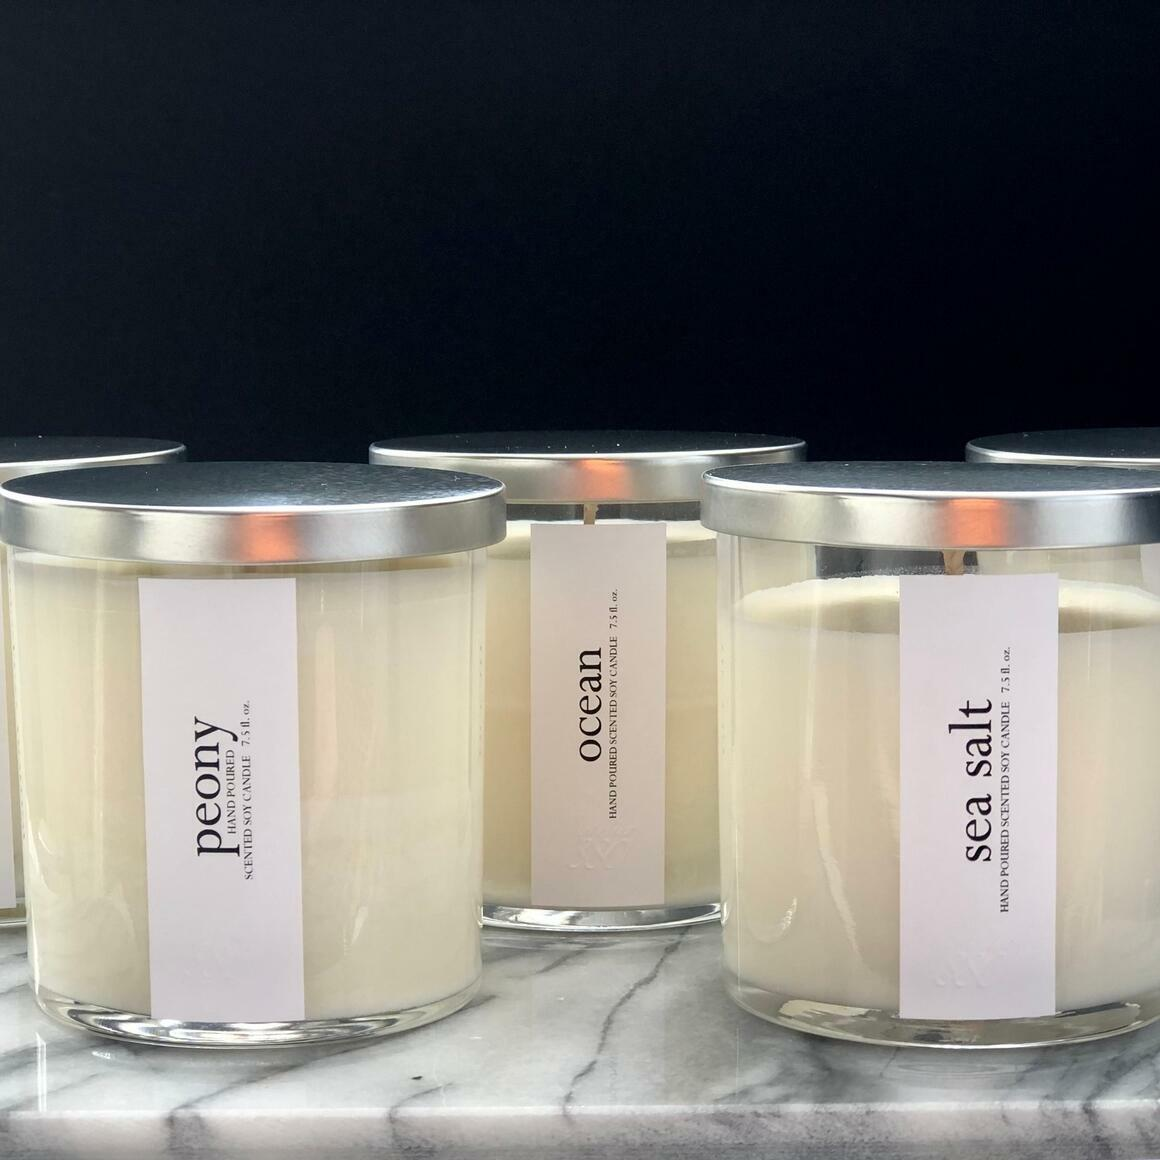 Minimalist Scented Candles - Clear Glass / Silver Metal Lid | Trada Marketplace